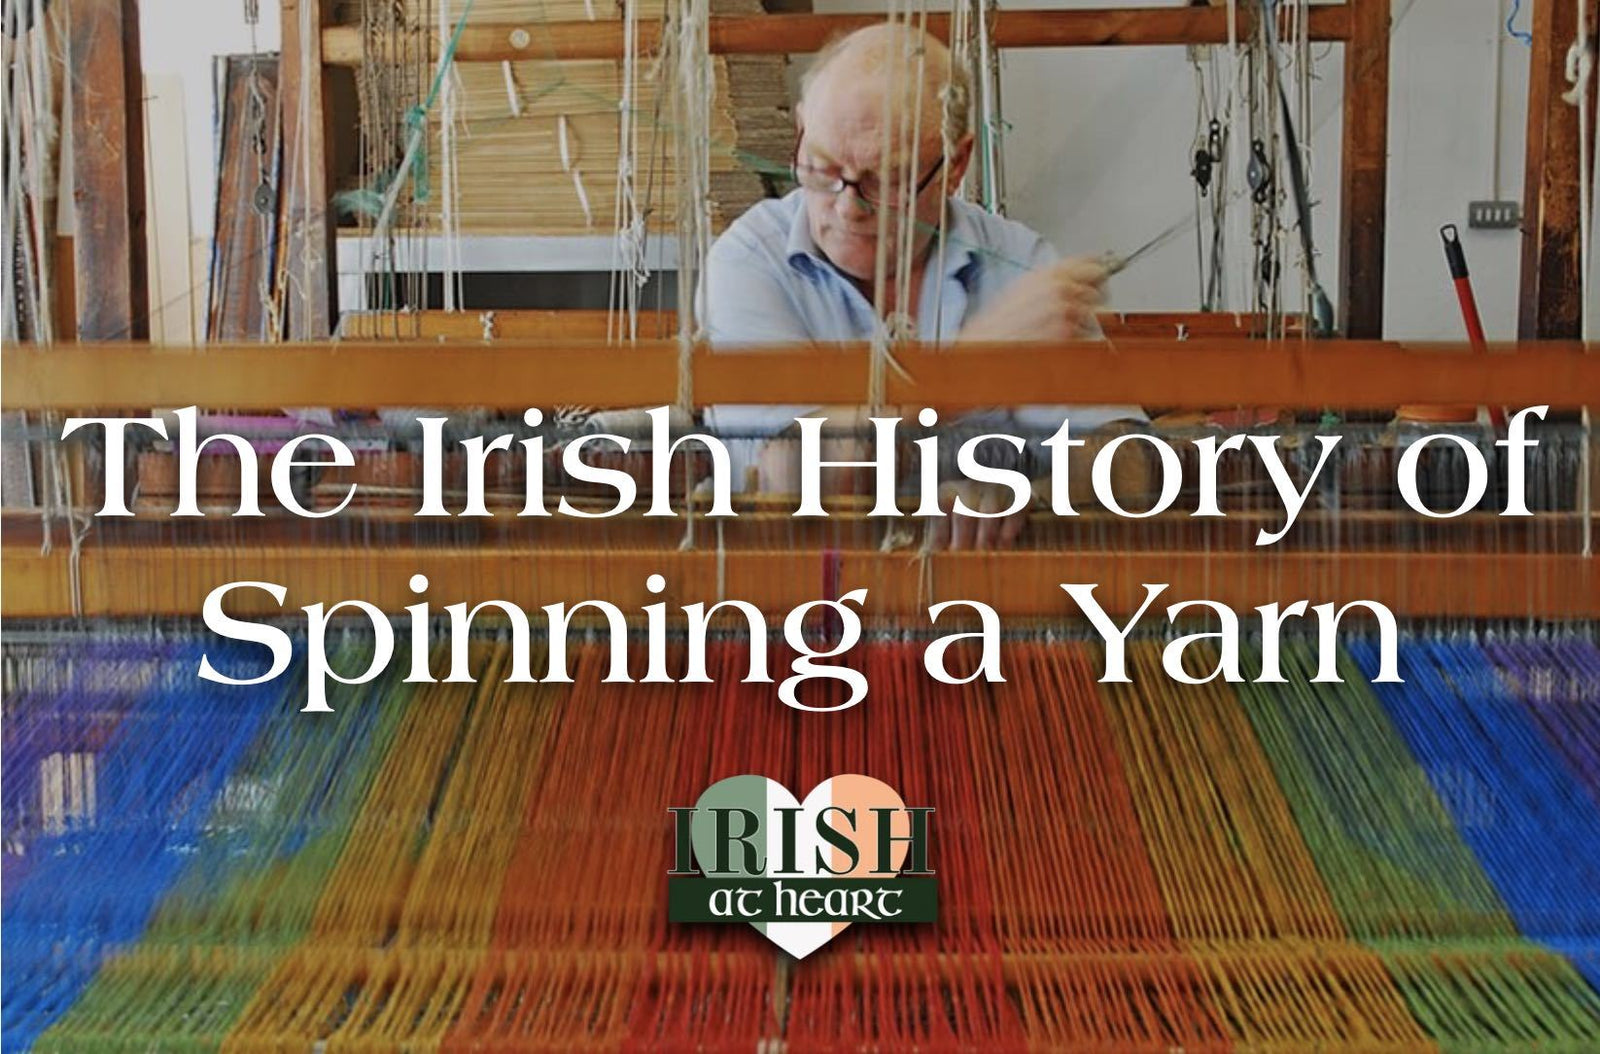 The Irish History of Spinning a Yarn